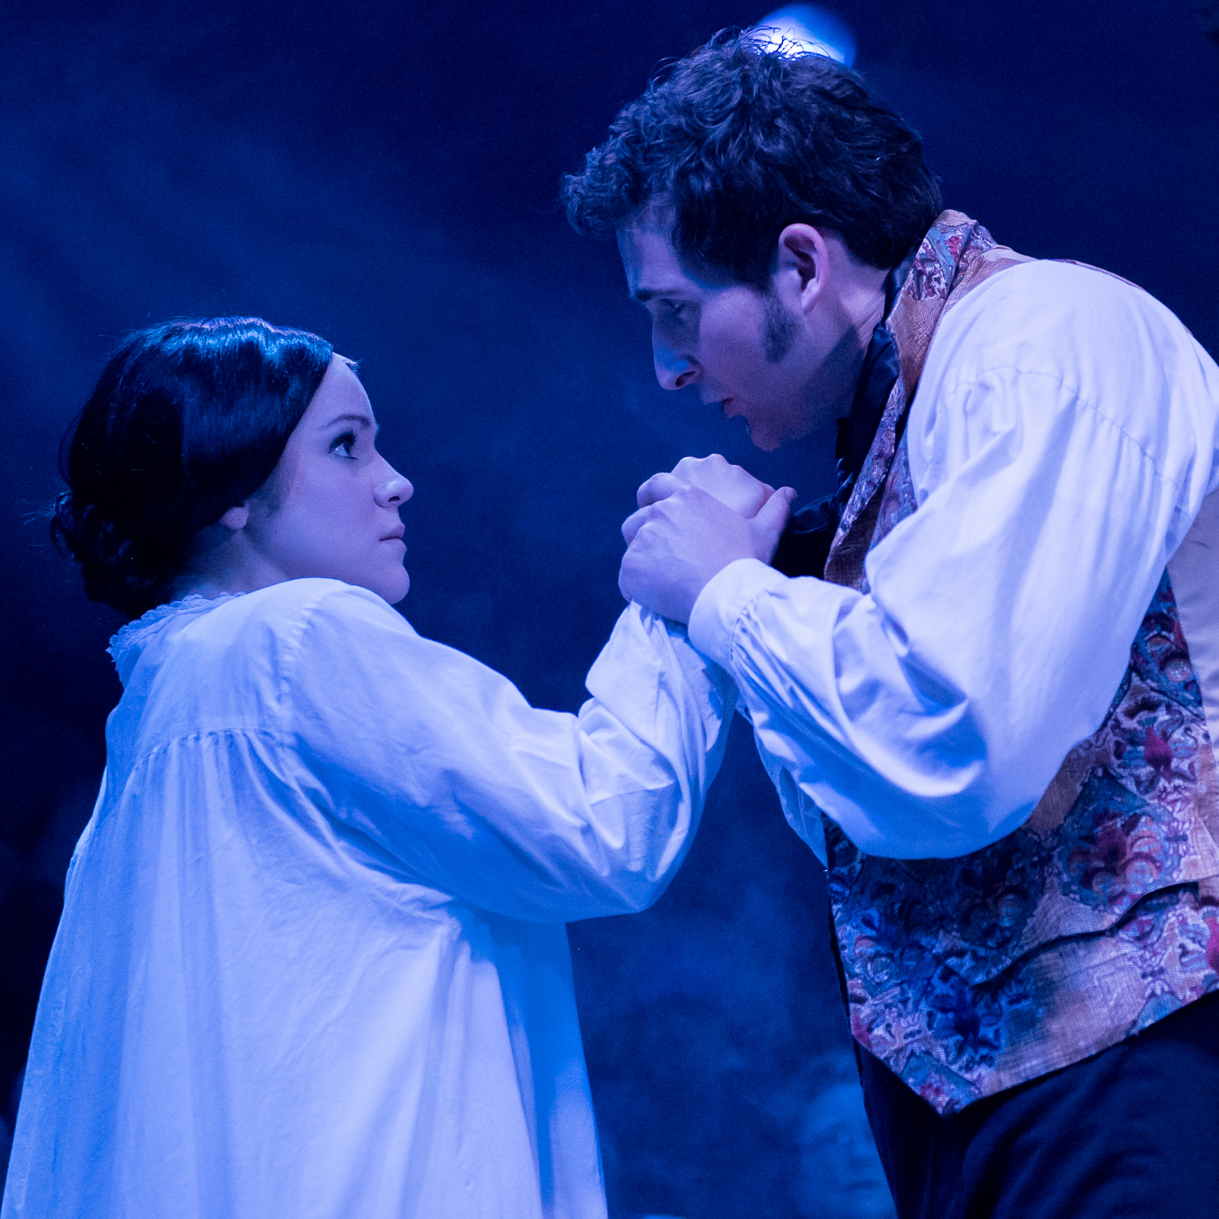 Jane+Eyre+Preview-7805Web-2.jpg